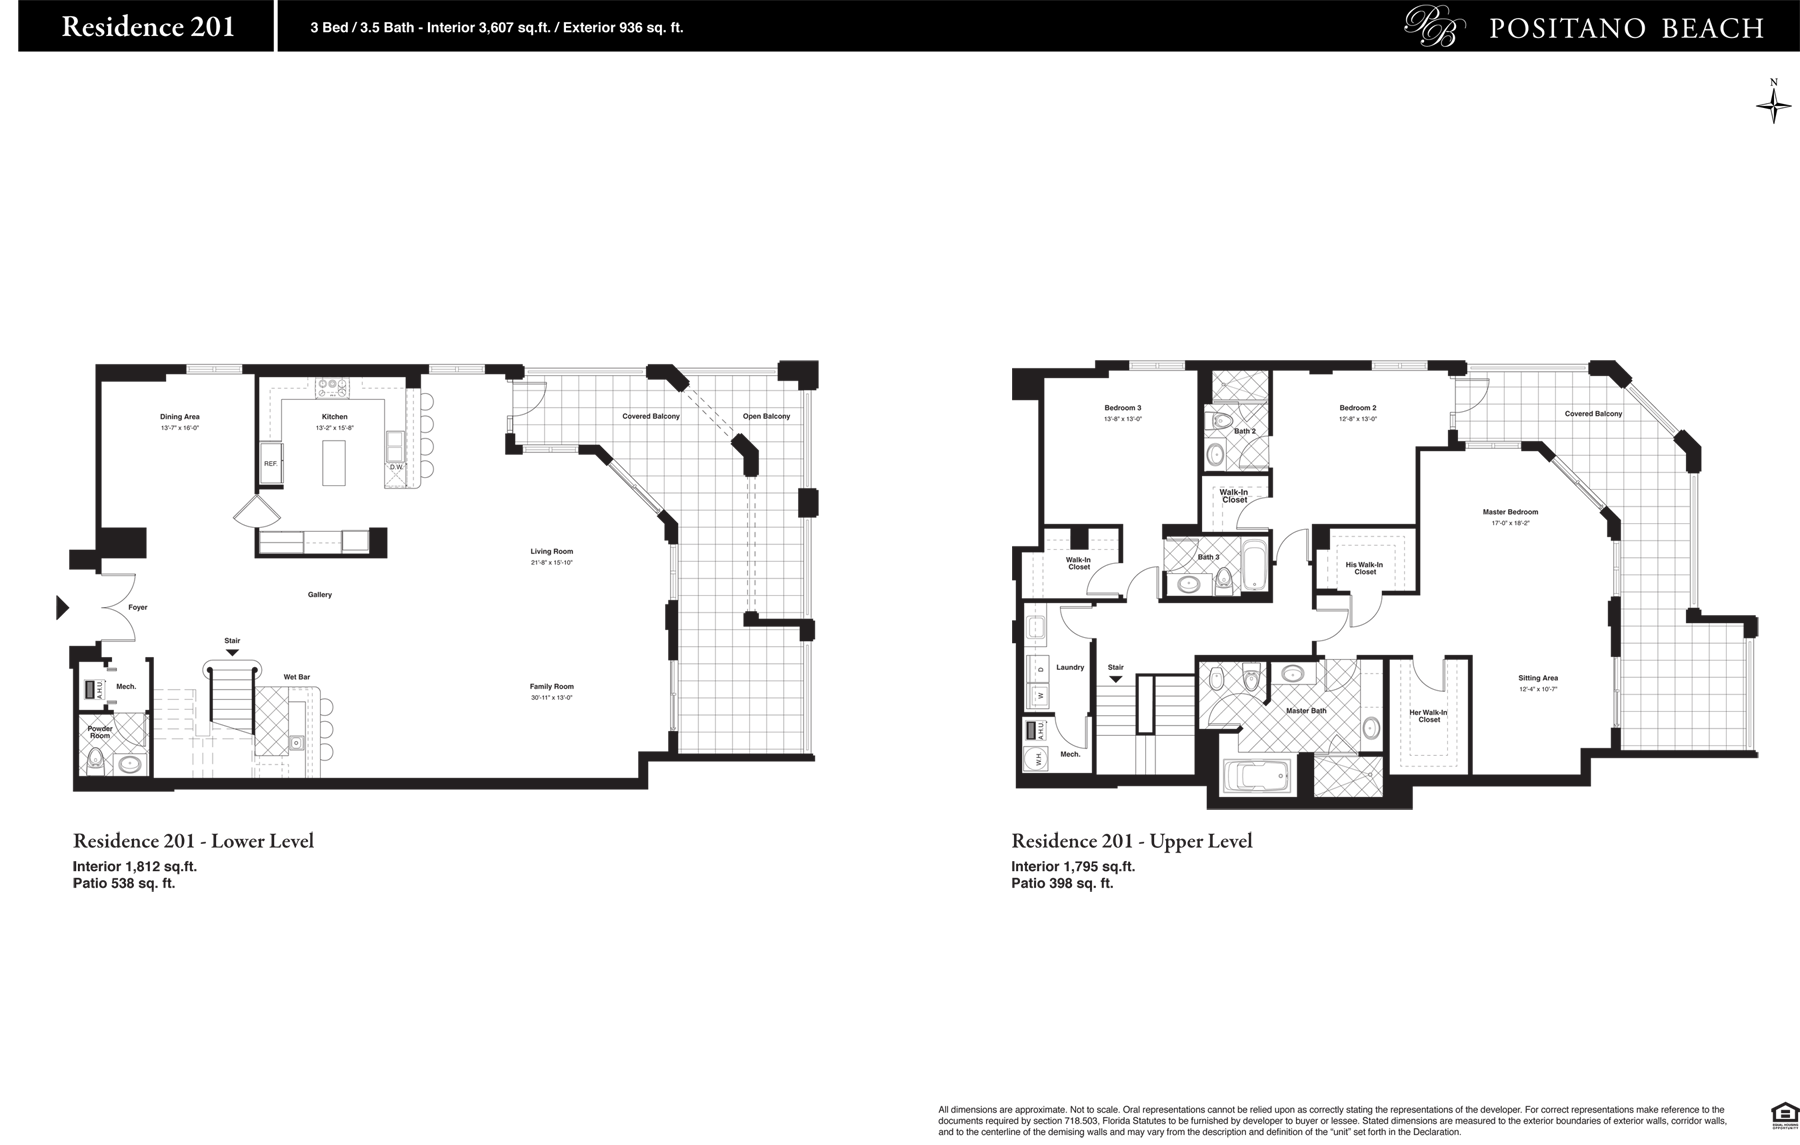 Positano Beach - Floorplan 10